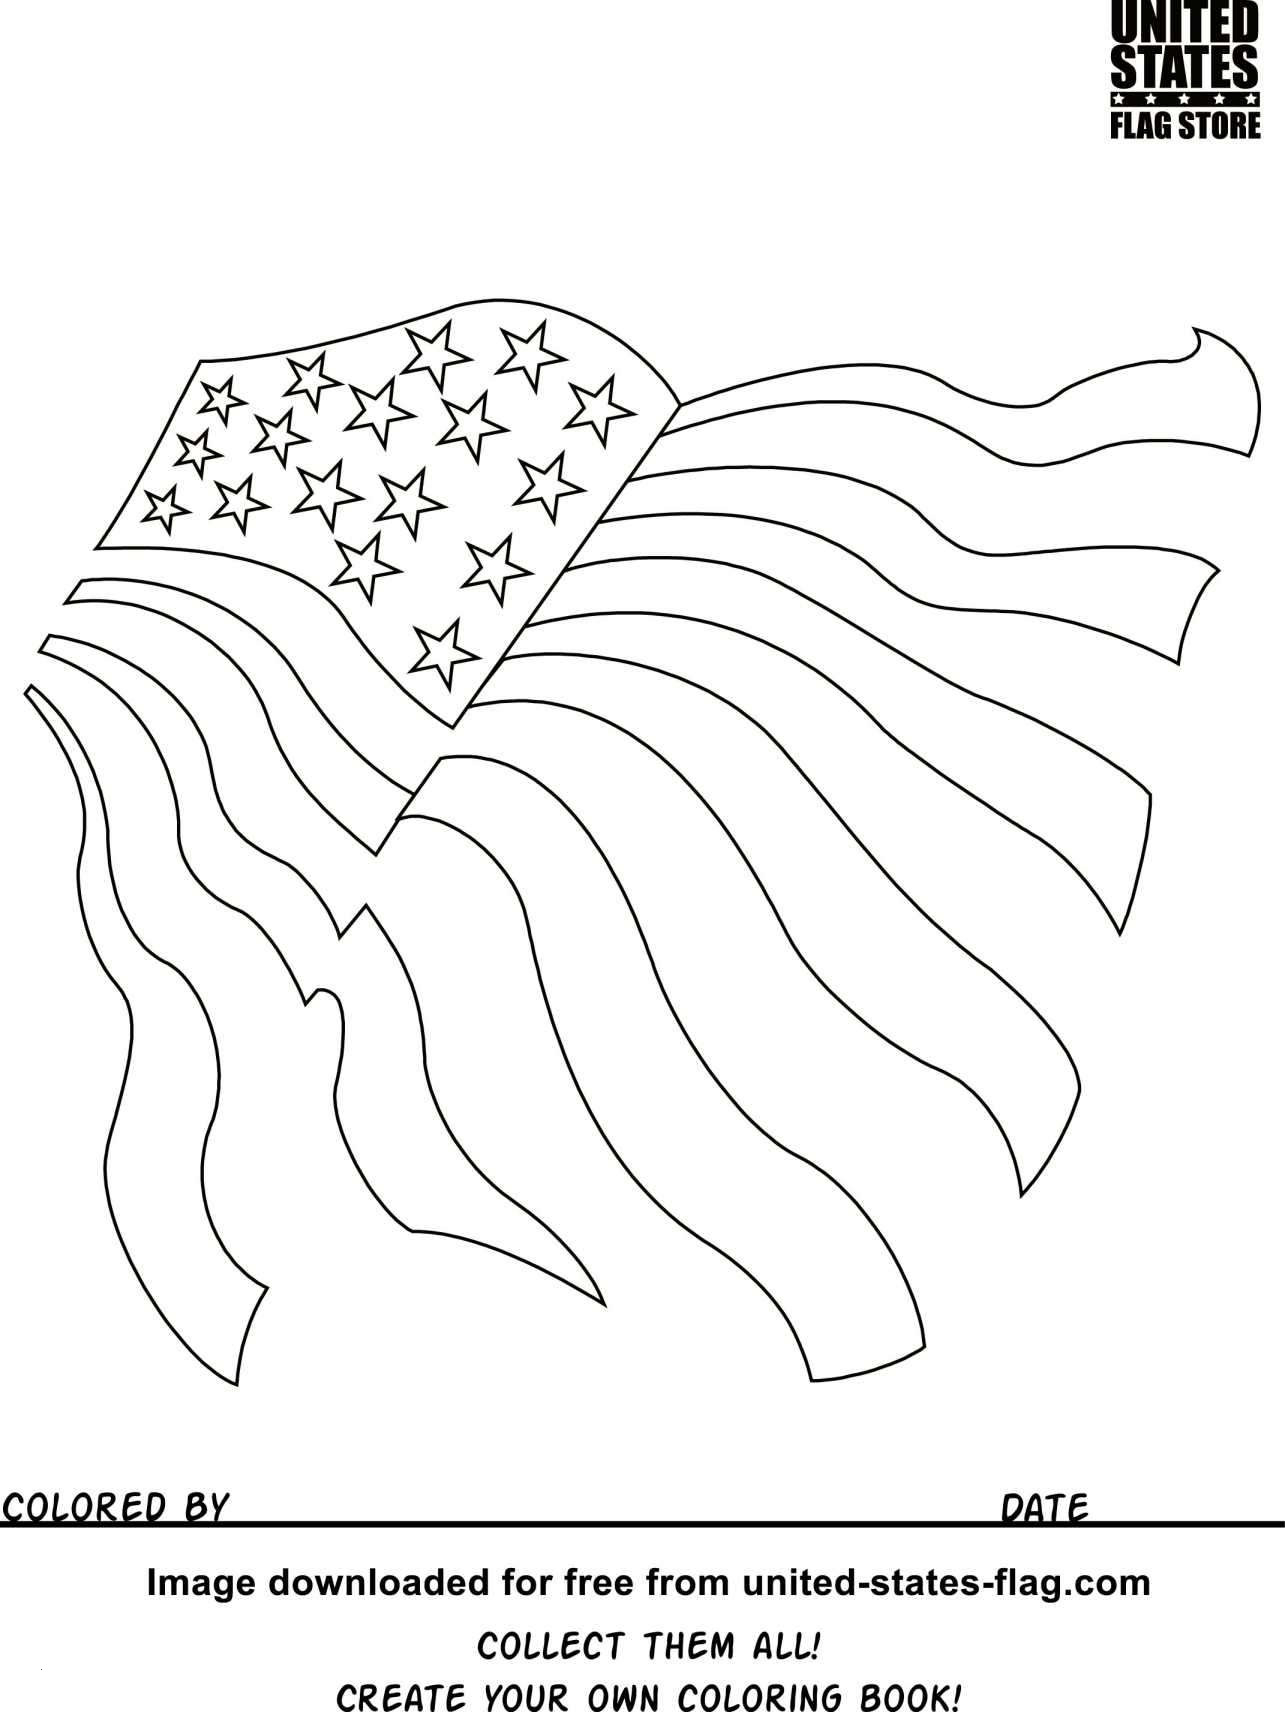 Texas Coloring Pages to Print  Download 9j - Free For kids